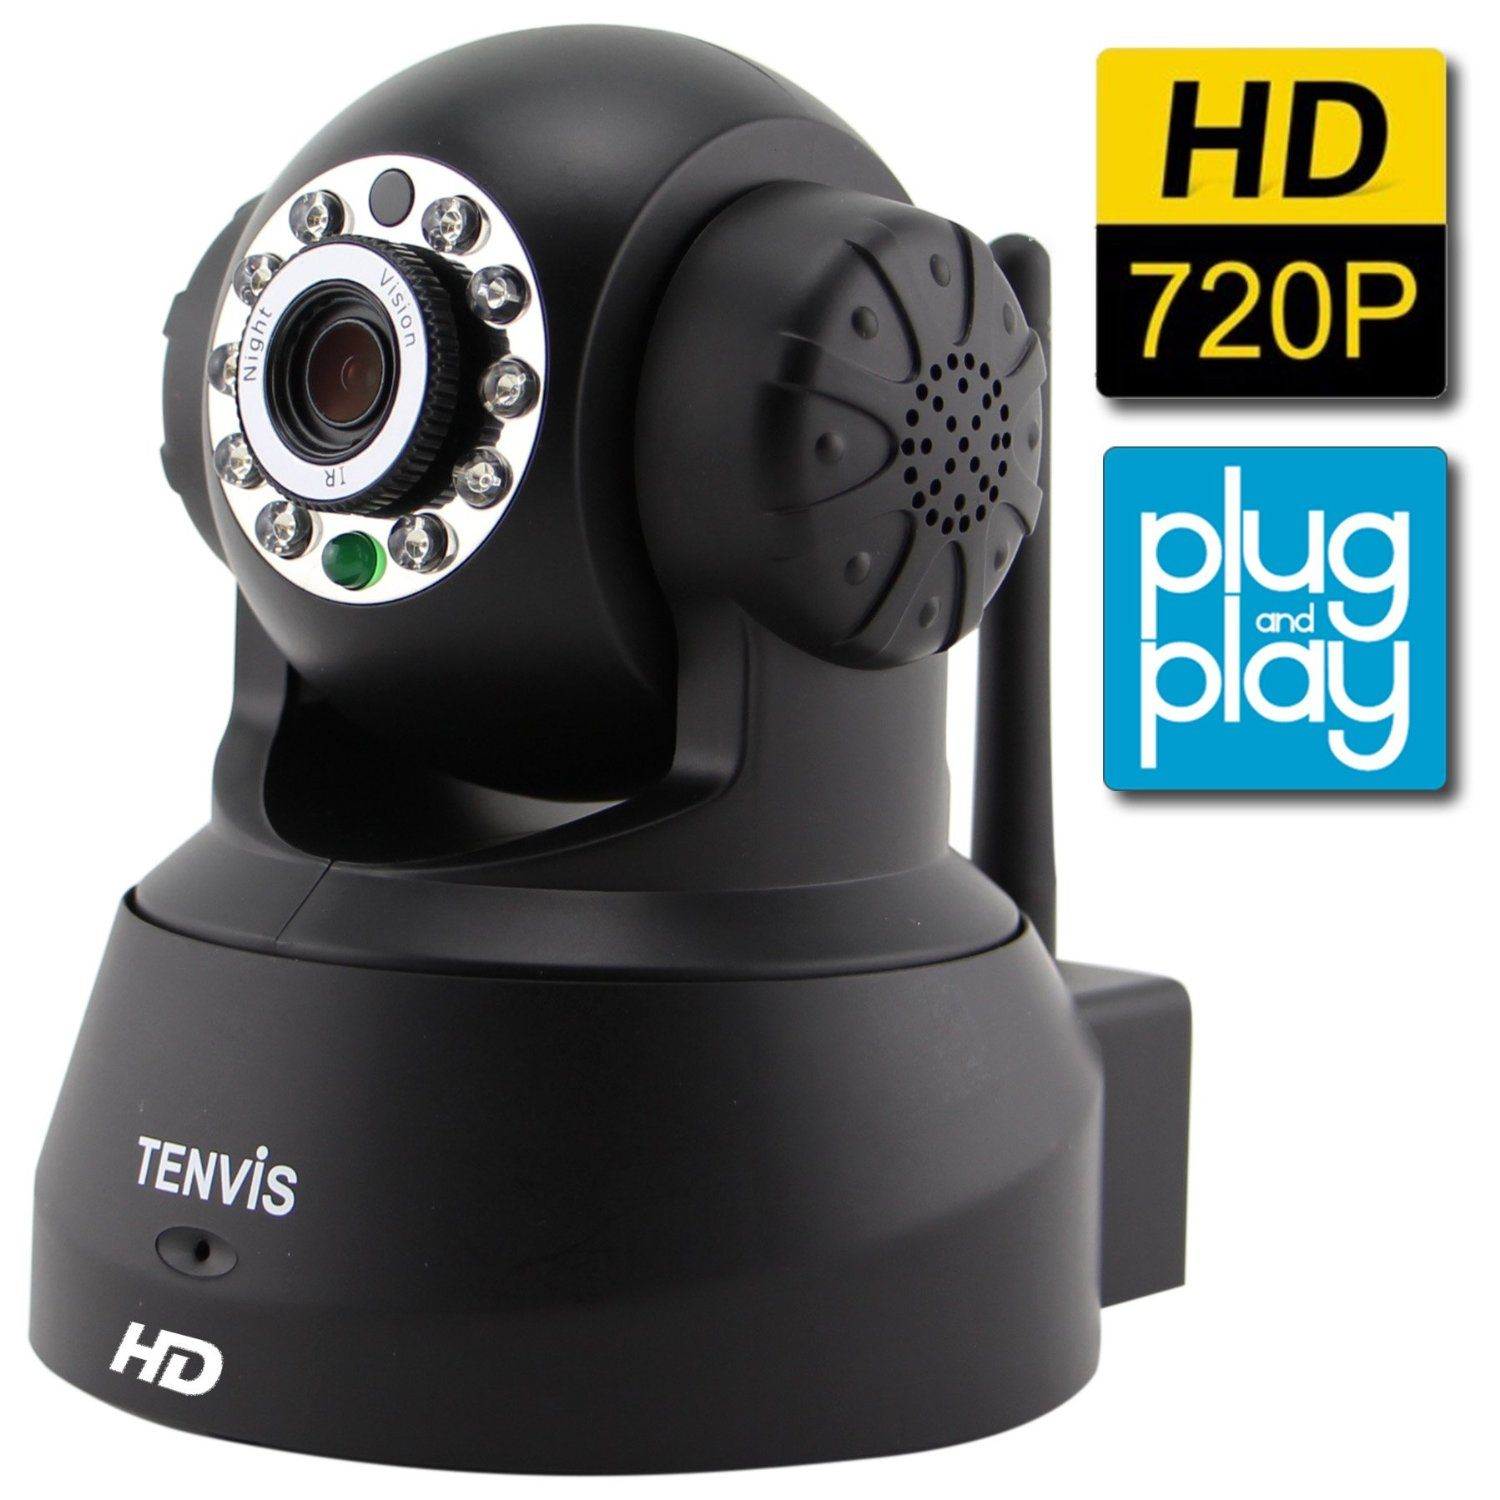 TENVIS JPT3815W-HD Wireless Surveillance IP/Network Security Camera